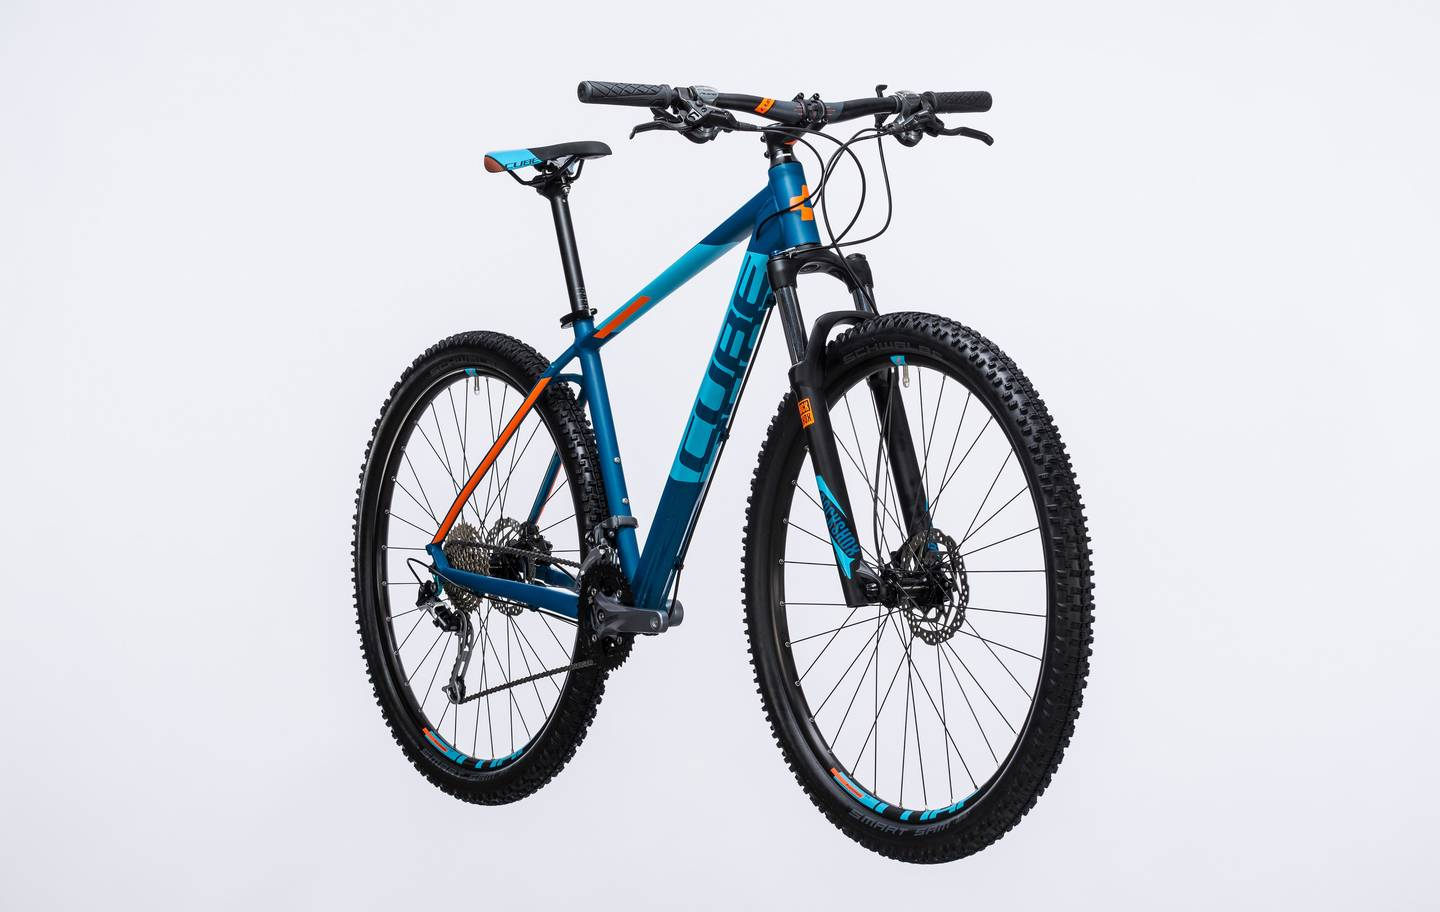 74f33c3526d 2017 CUBE ANALOG HARDTAIL BLUE £629.00